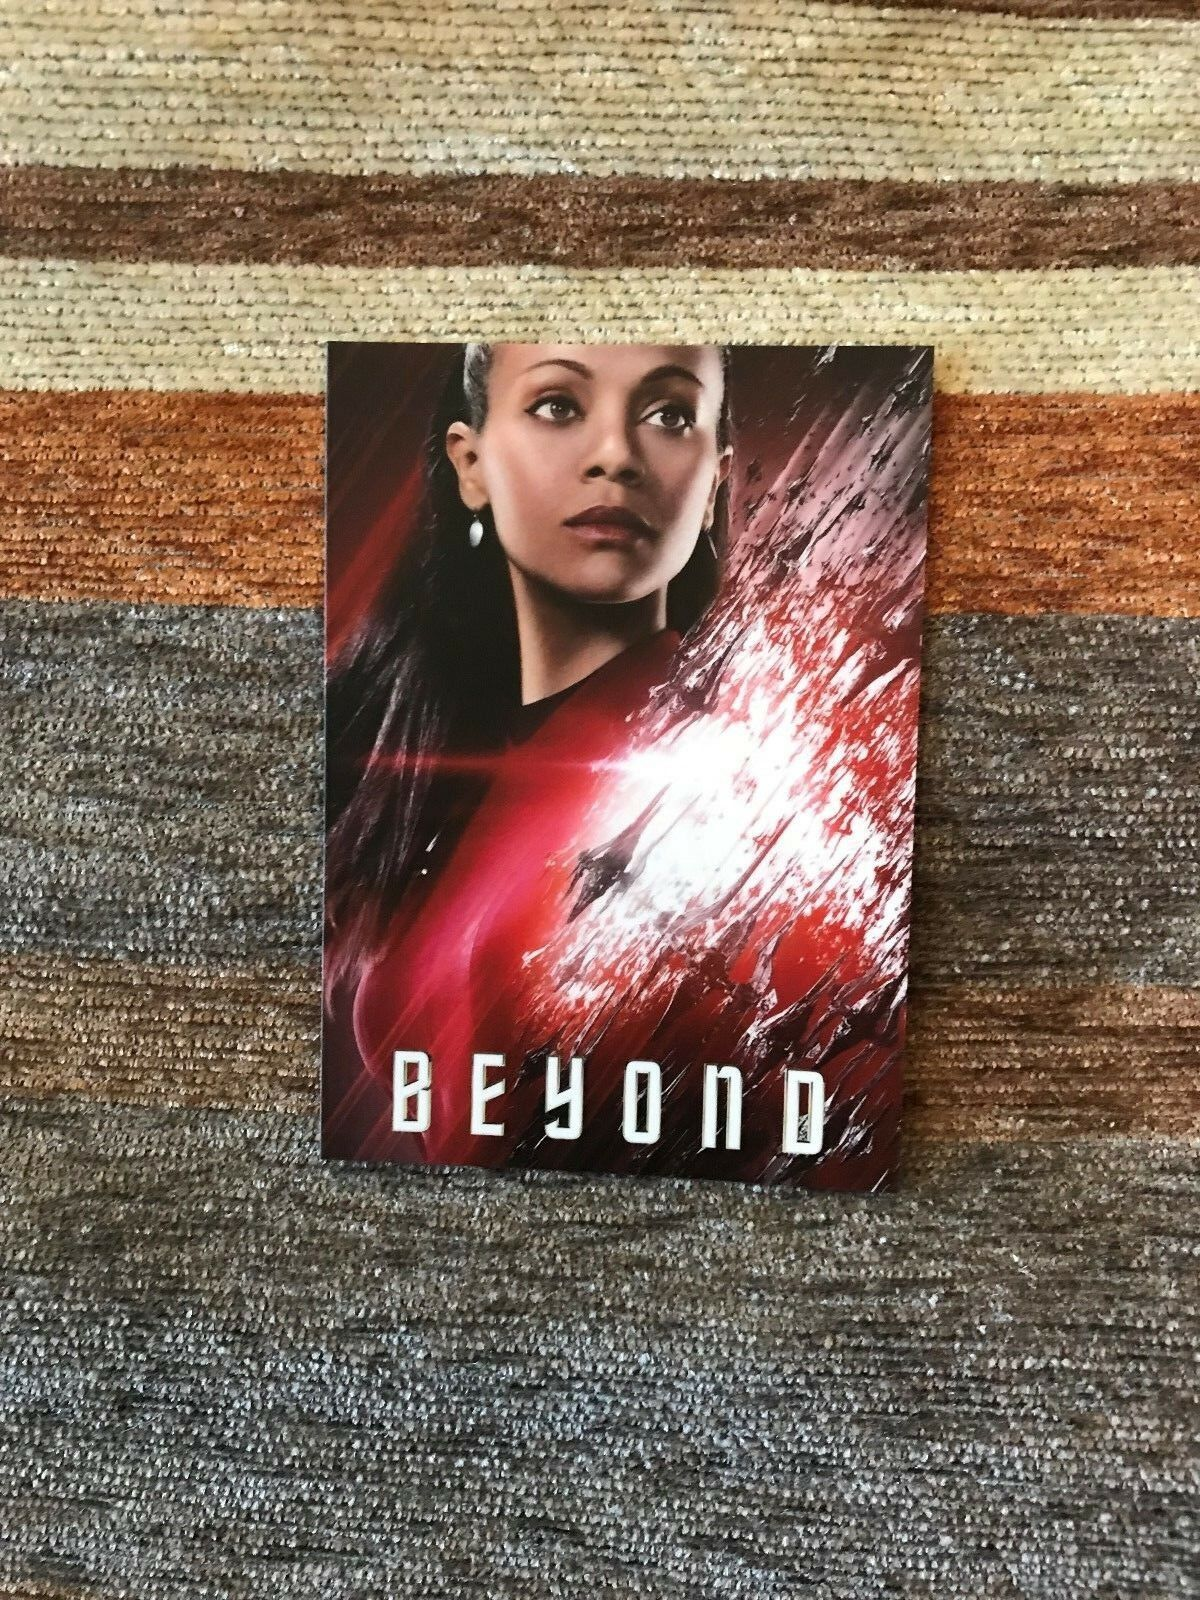 Primary image for 2016 Star Trek Beyond (Movie) Character Uhura Promo Card